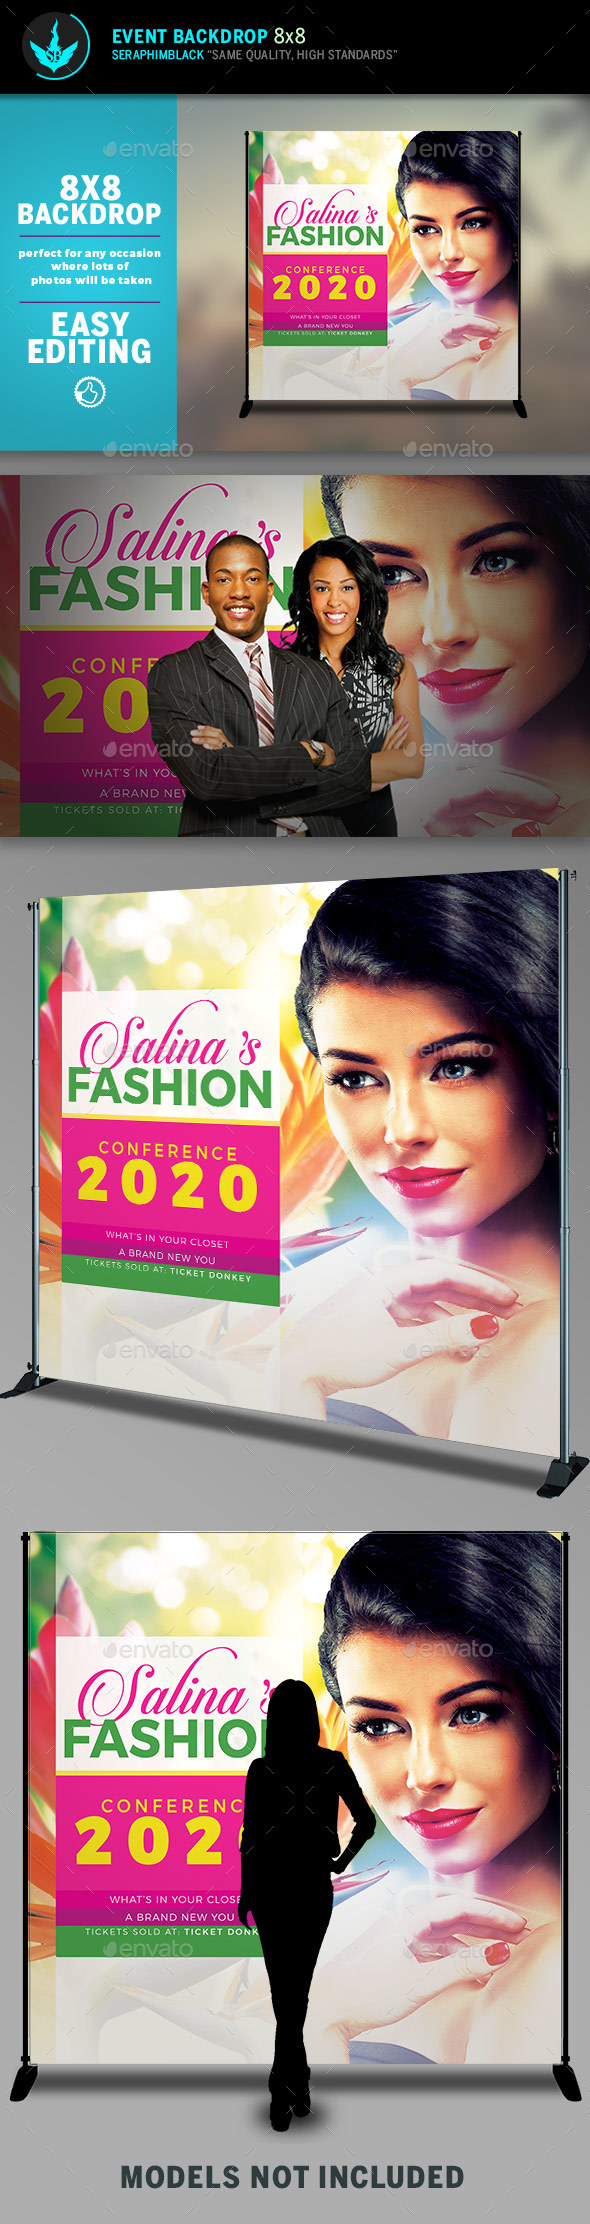 Fashion Conference 2 8x8 Event  Backdrop Template - Signage Print Templates